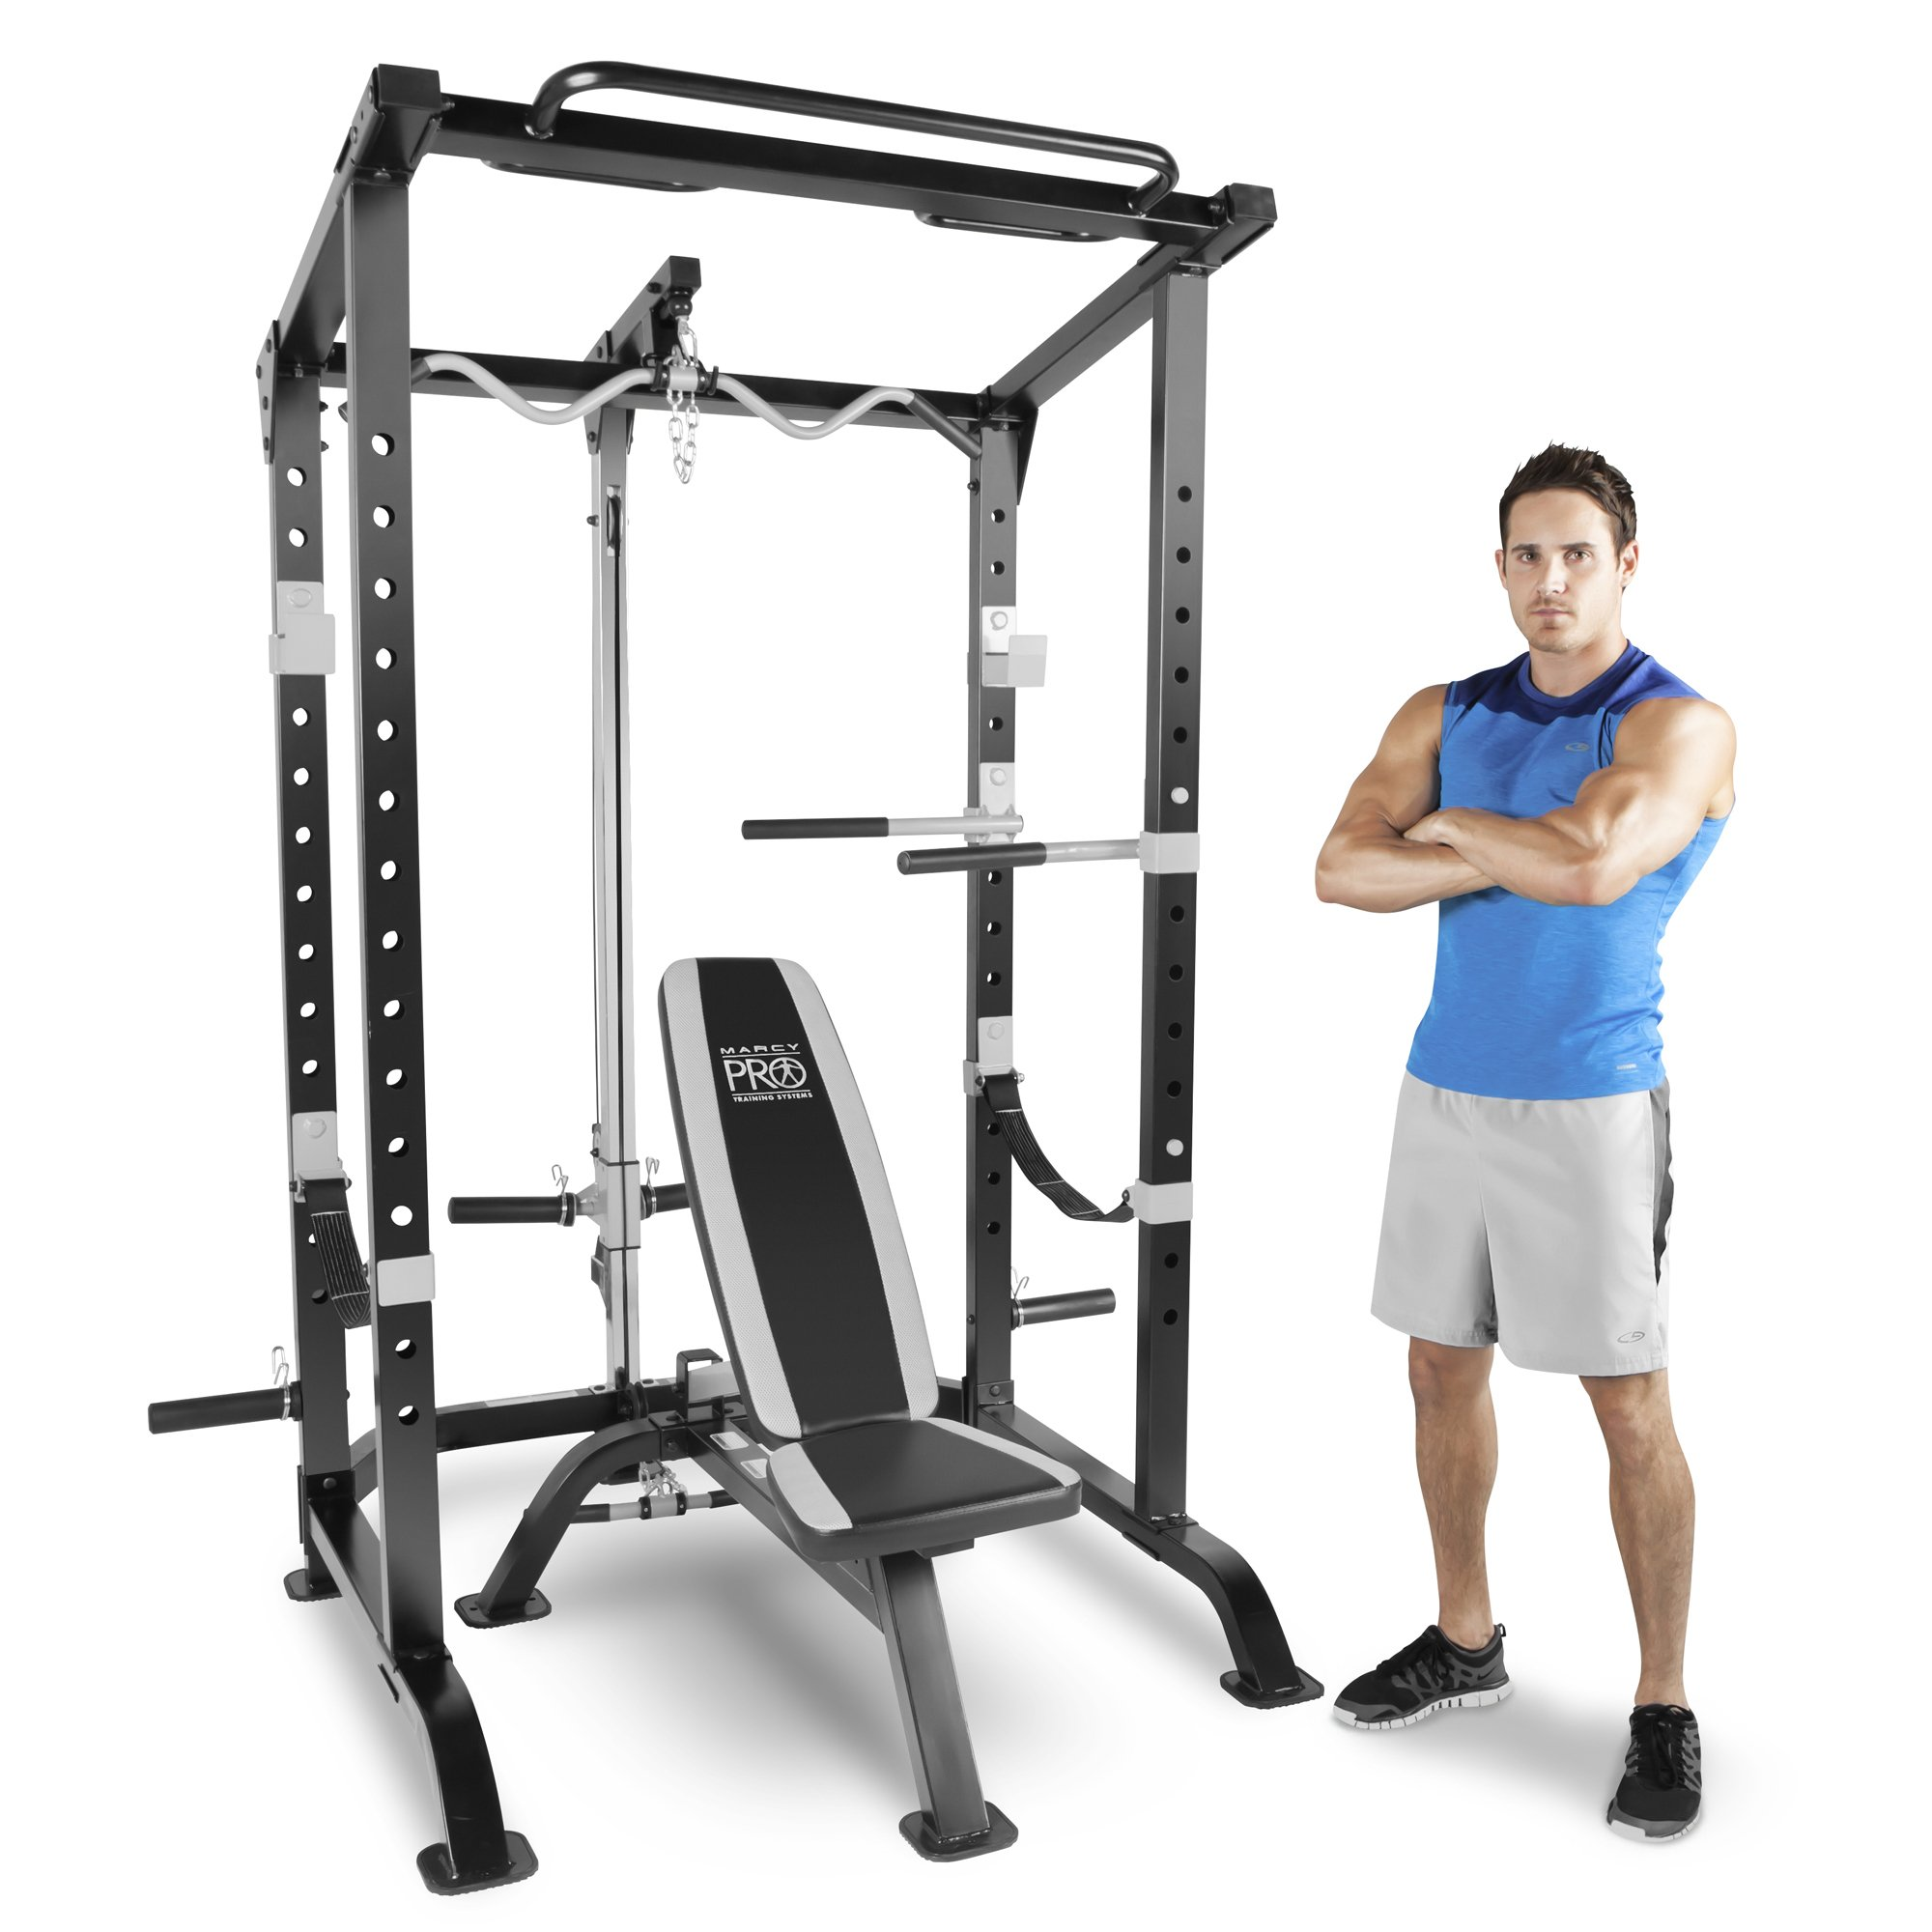 Marcy Pro Full Cage and Weight Bench Personal Home Gym Total Body Workout System by Marcy Fitness